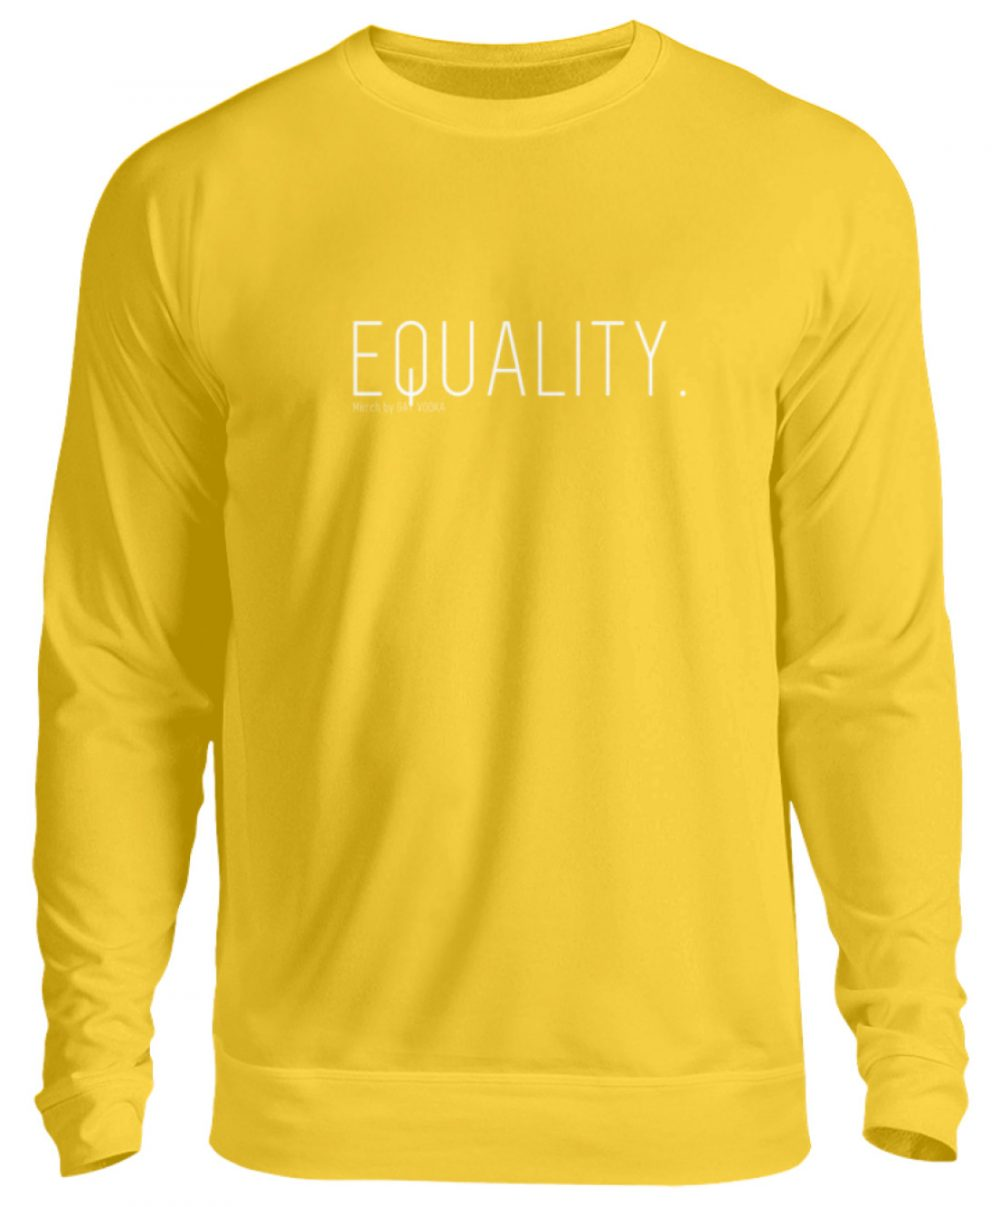 EQUALITY. - Unisex Pullover-1774